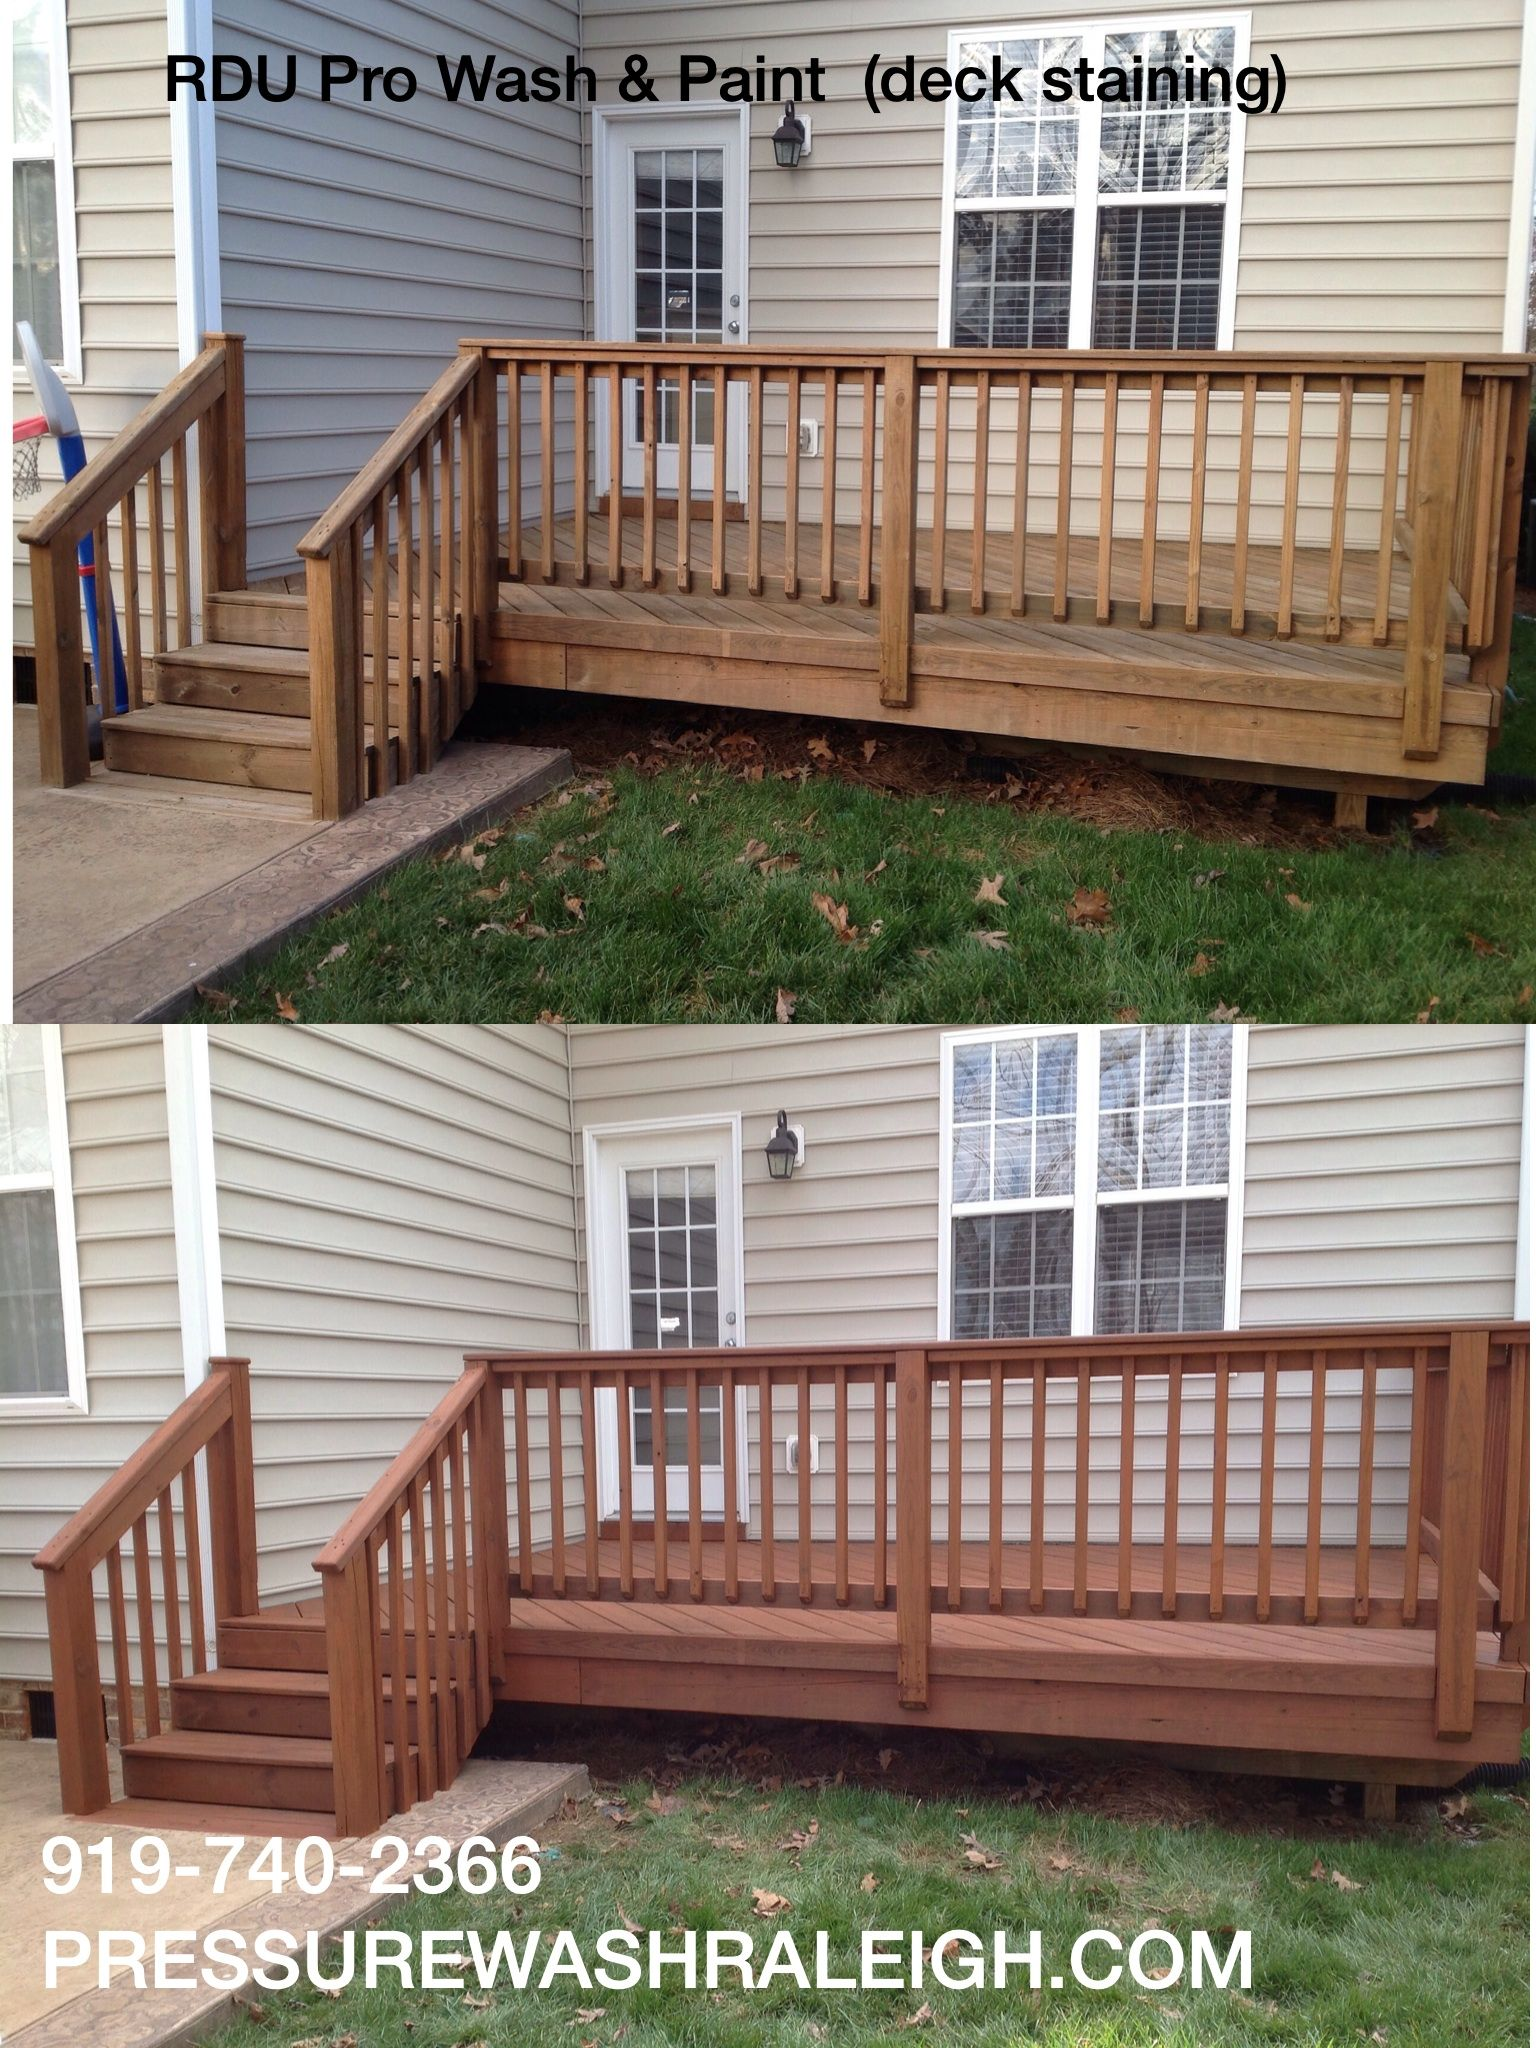 Semi Transparent Cider Mill Stain Applied To The Deck By Rdu Pro